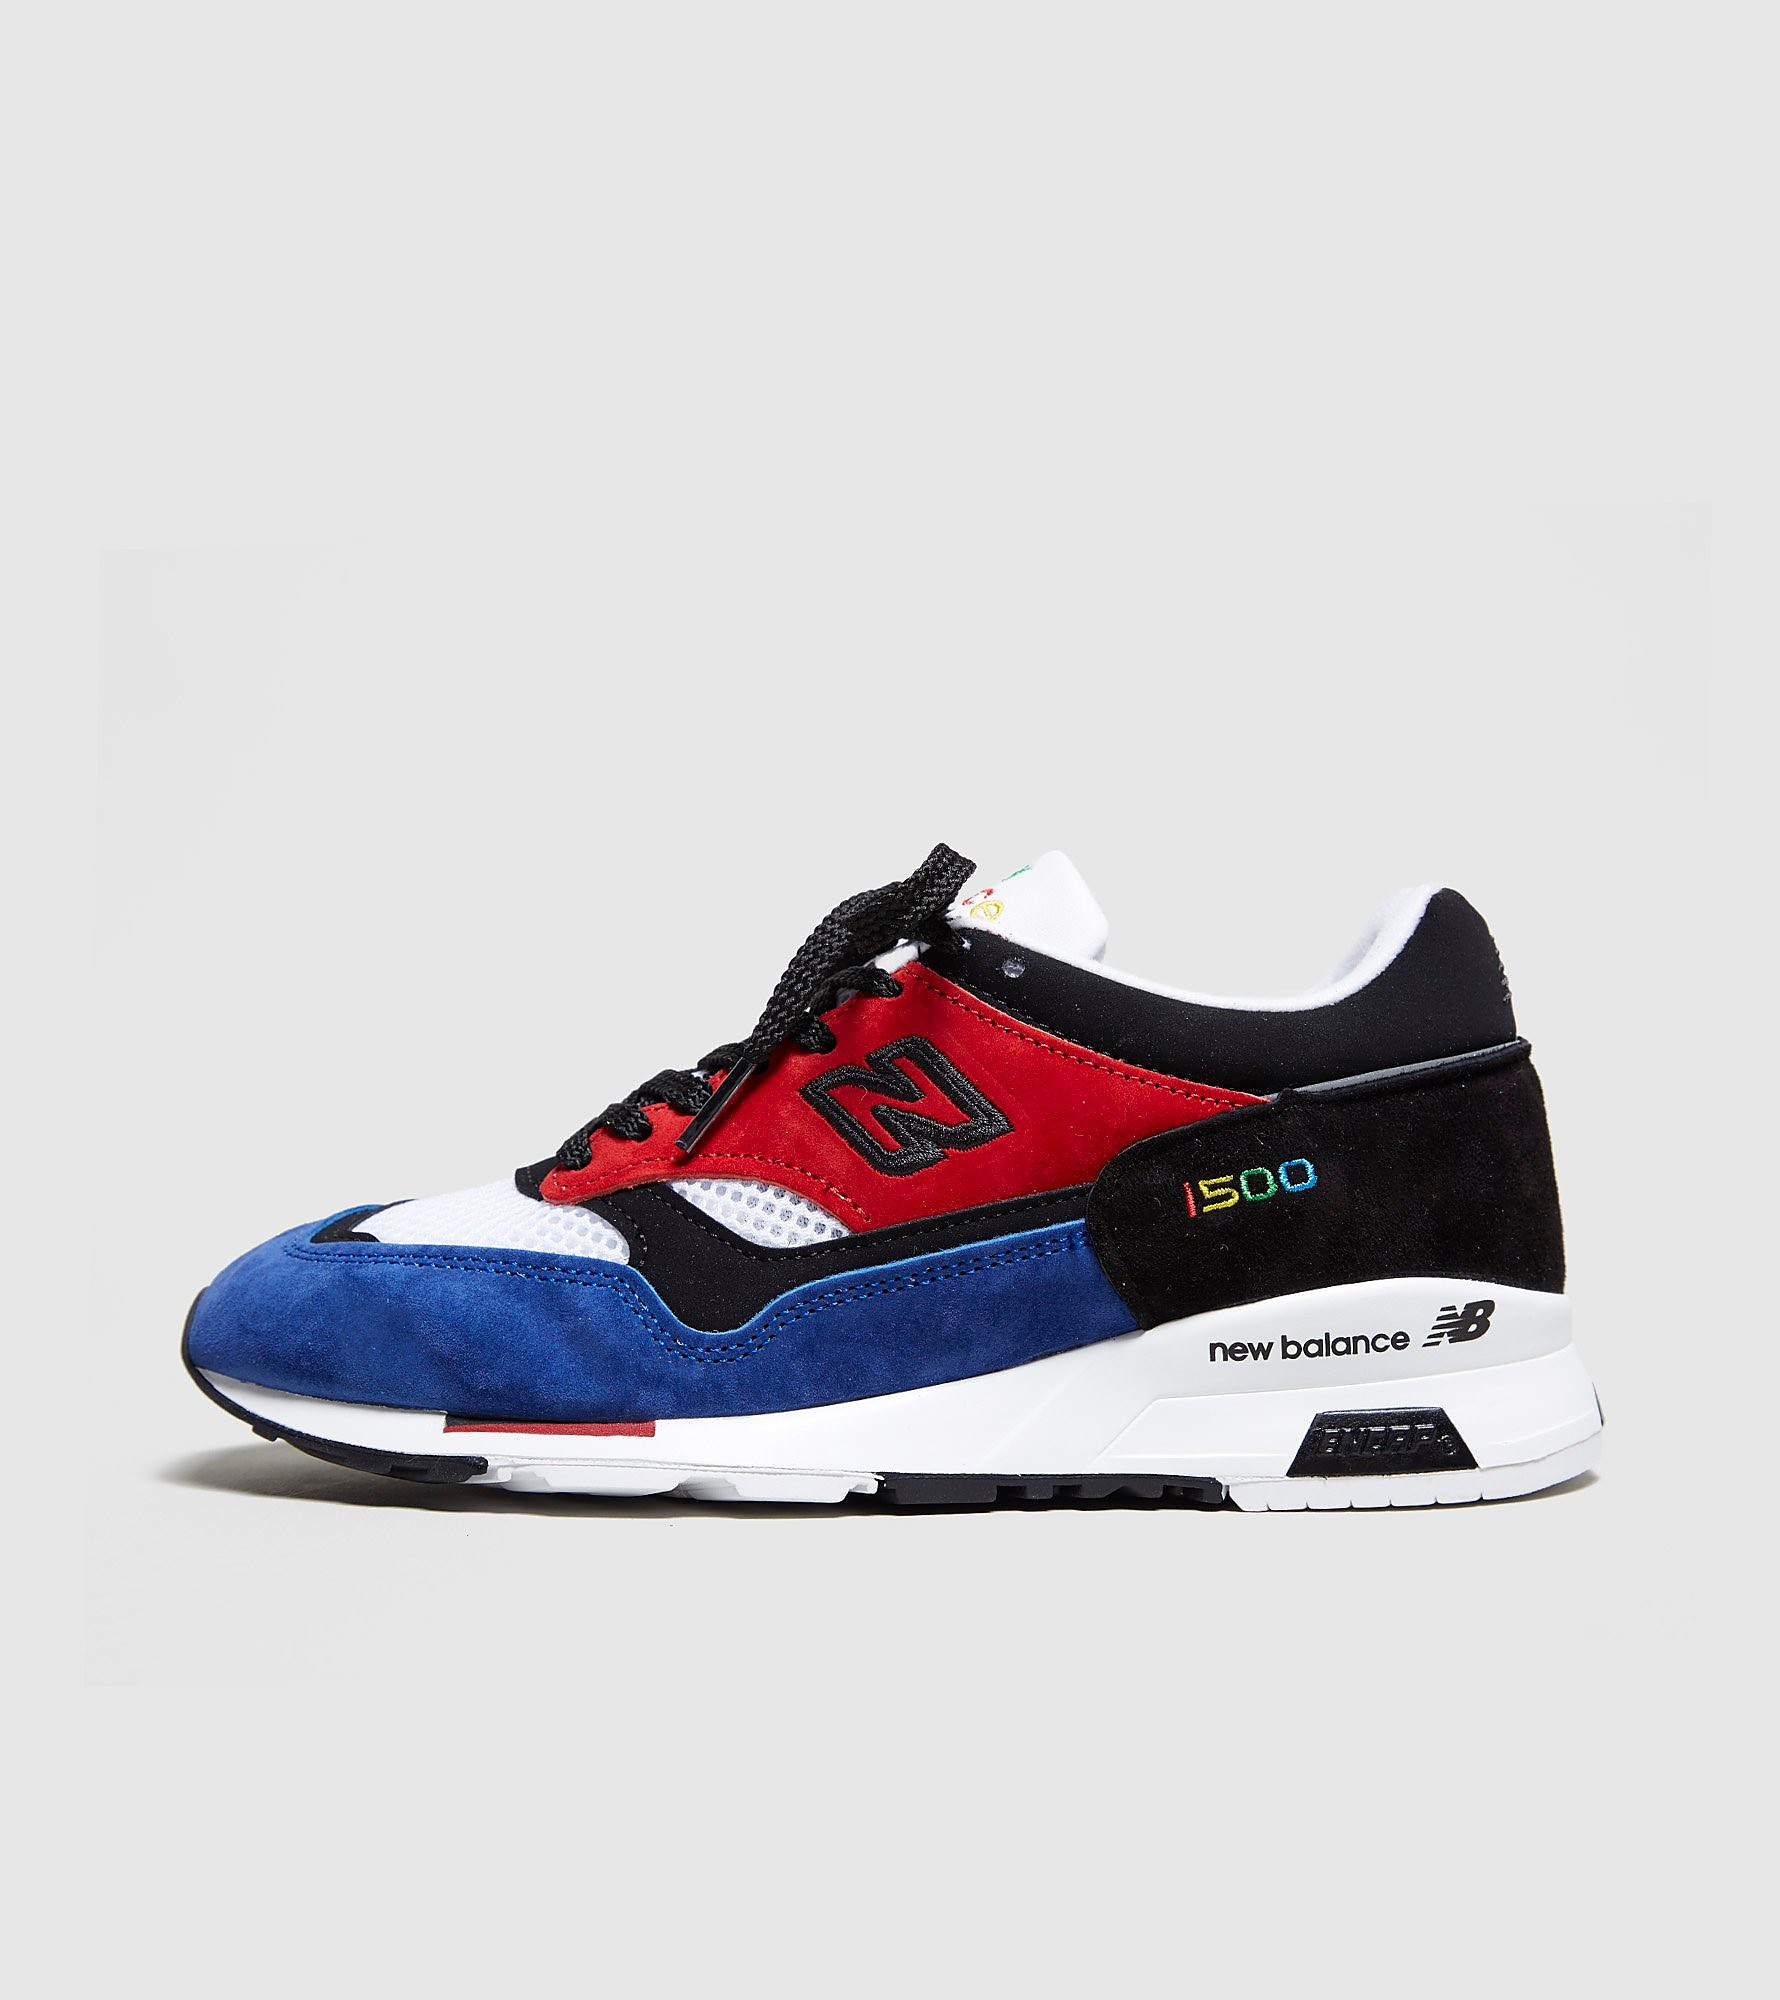 New Balance 1500 ''Made in England' Femme